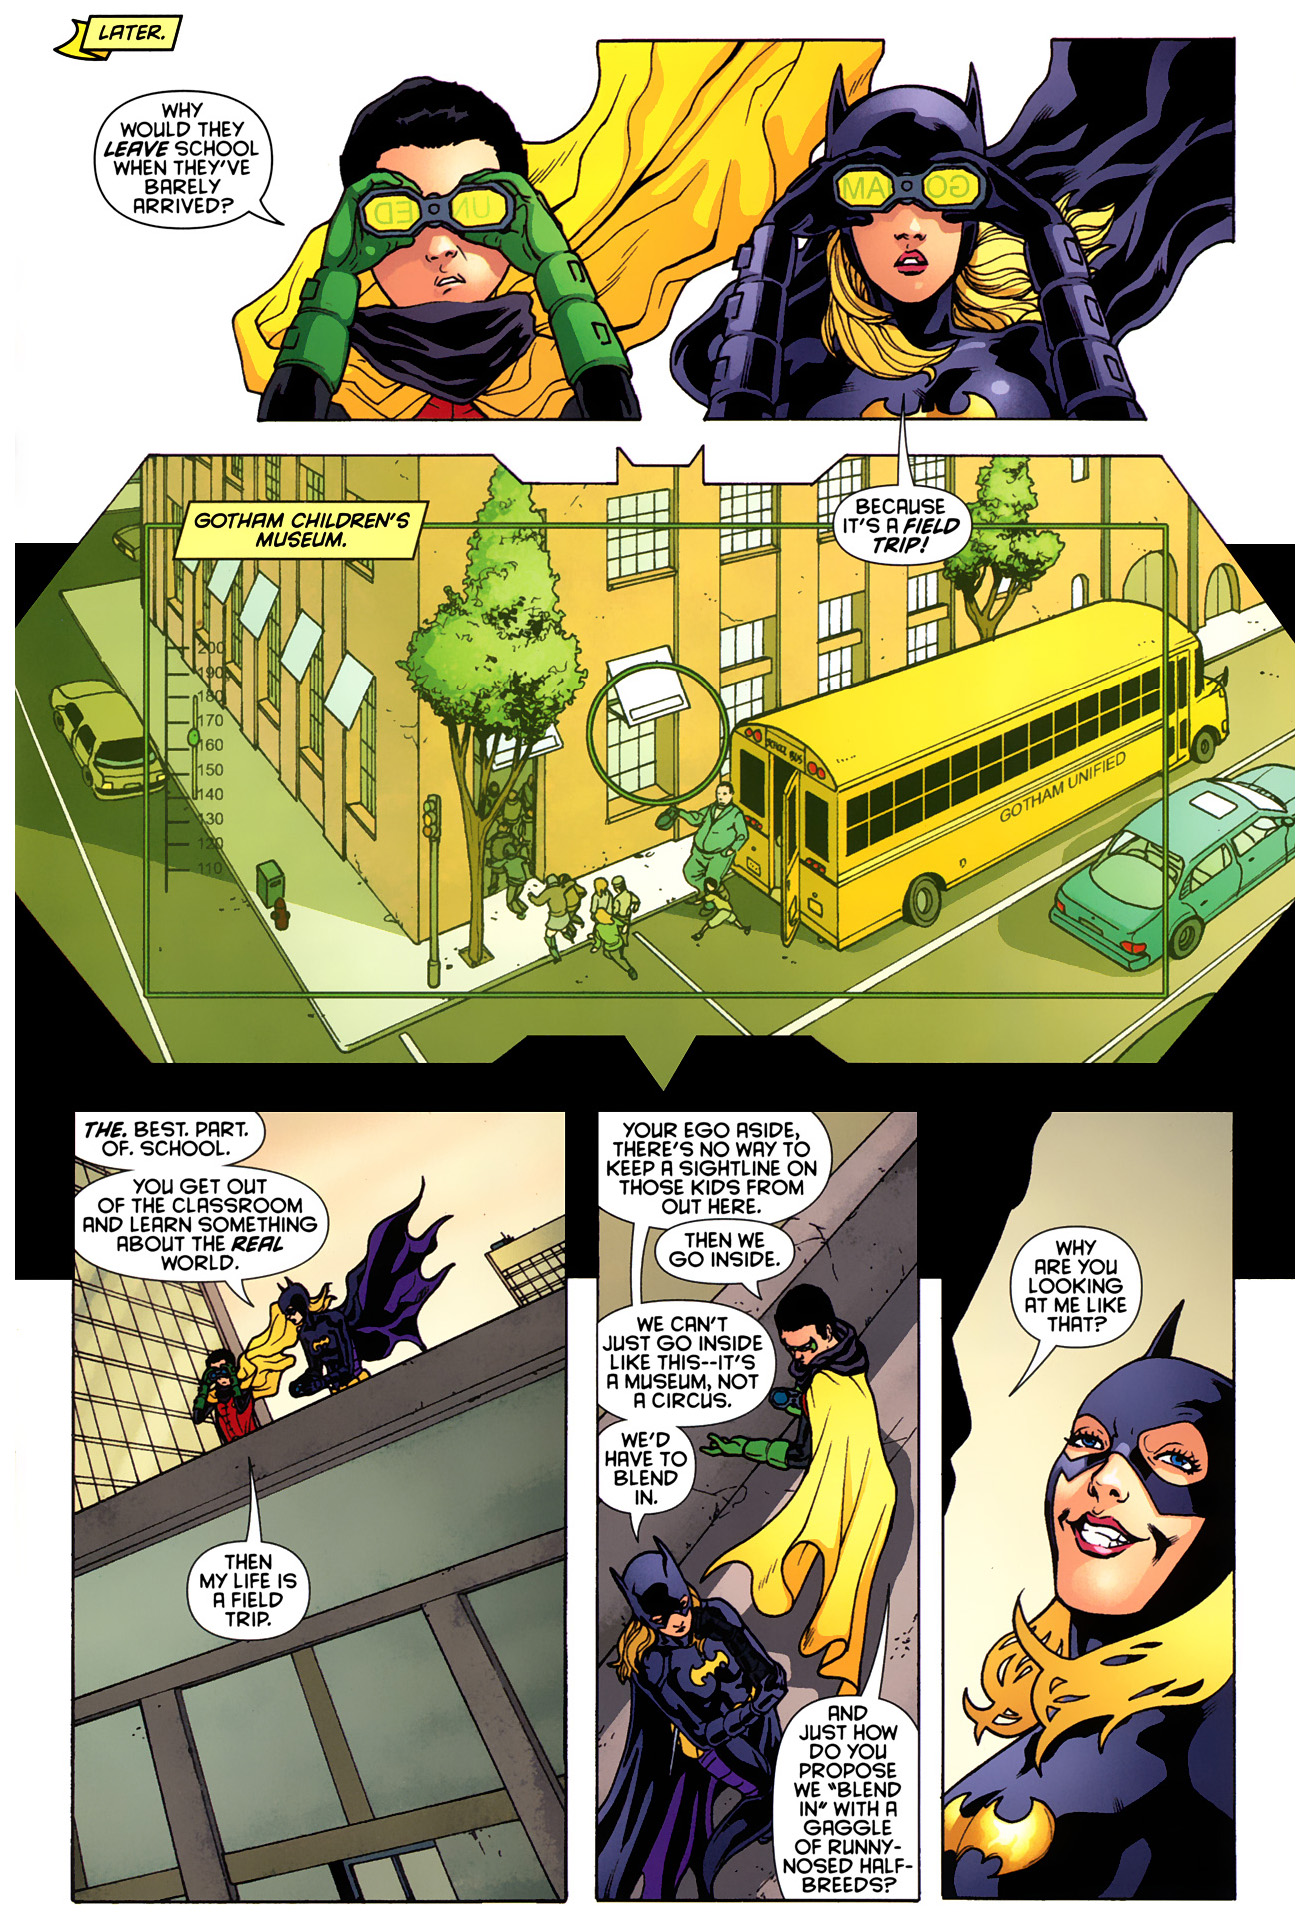 why you'll feel sorry for damian wayne